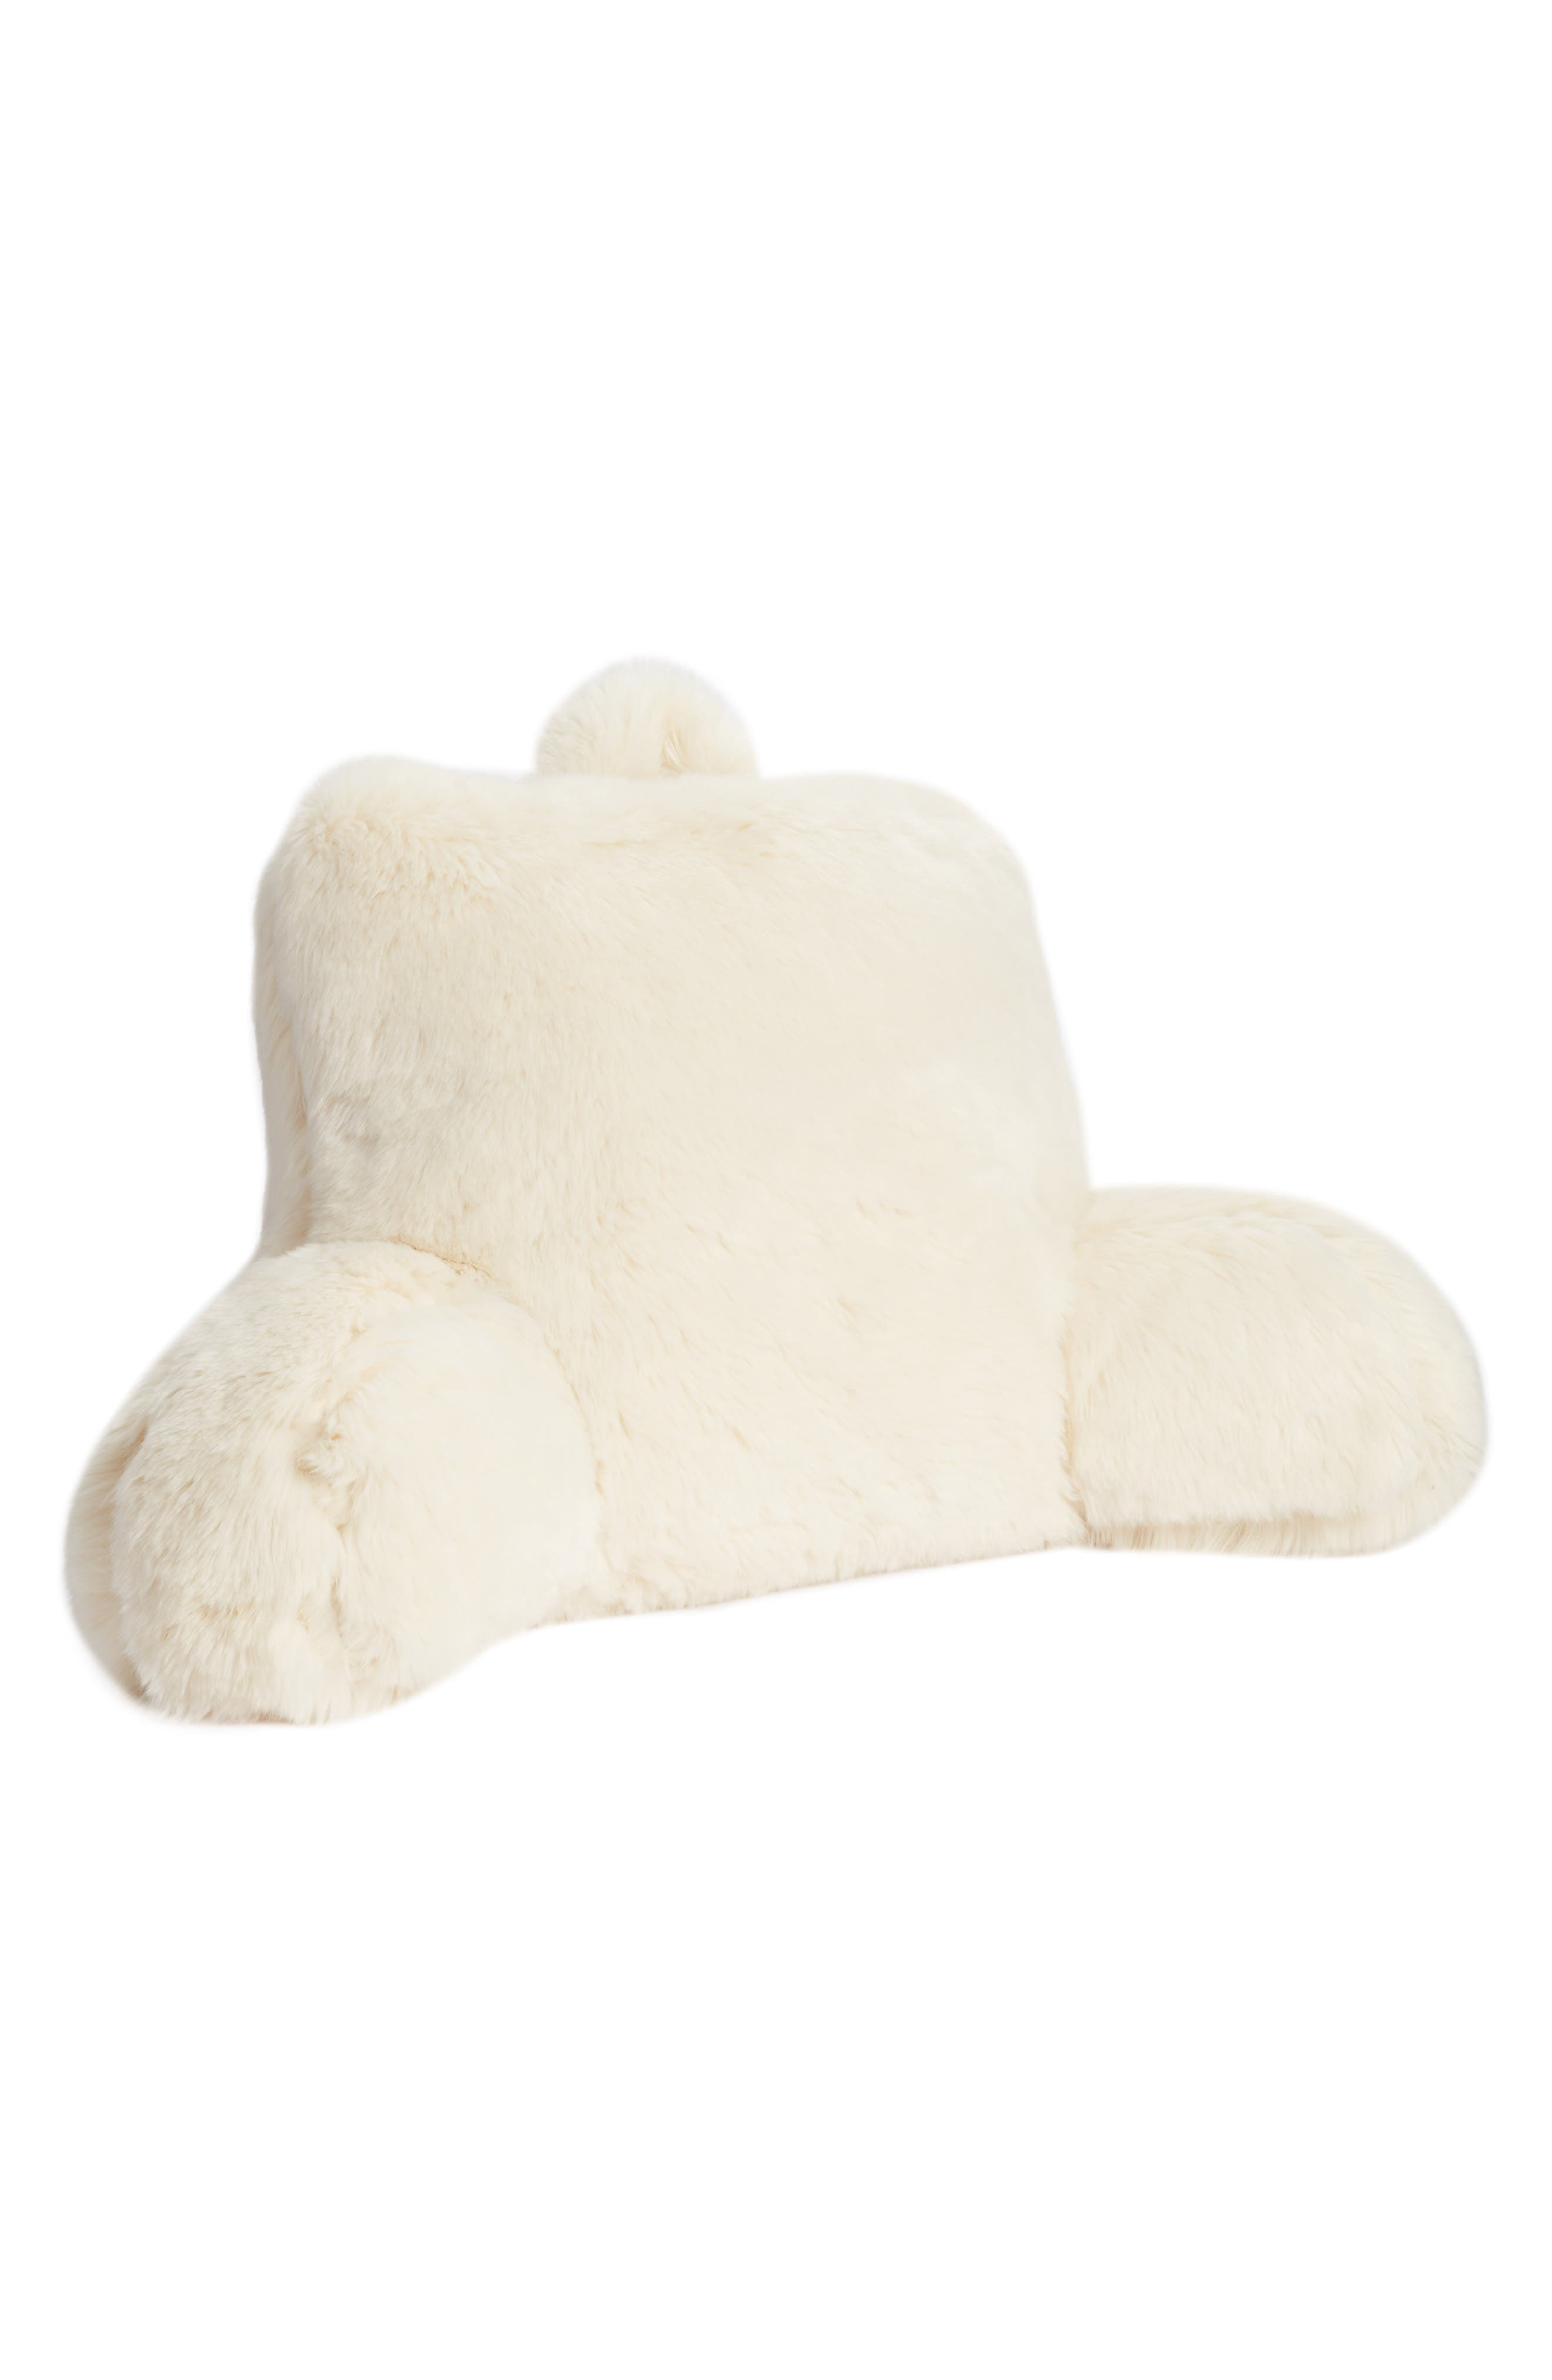 NORDSTROM AT HOME, Cuddle Up Faux Fur Backrest Pillow, Main thumbnail 1, color, IVORY